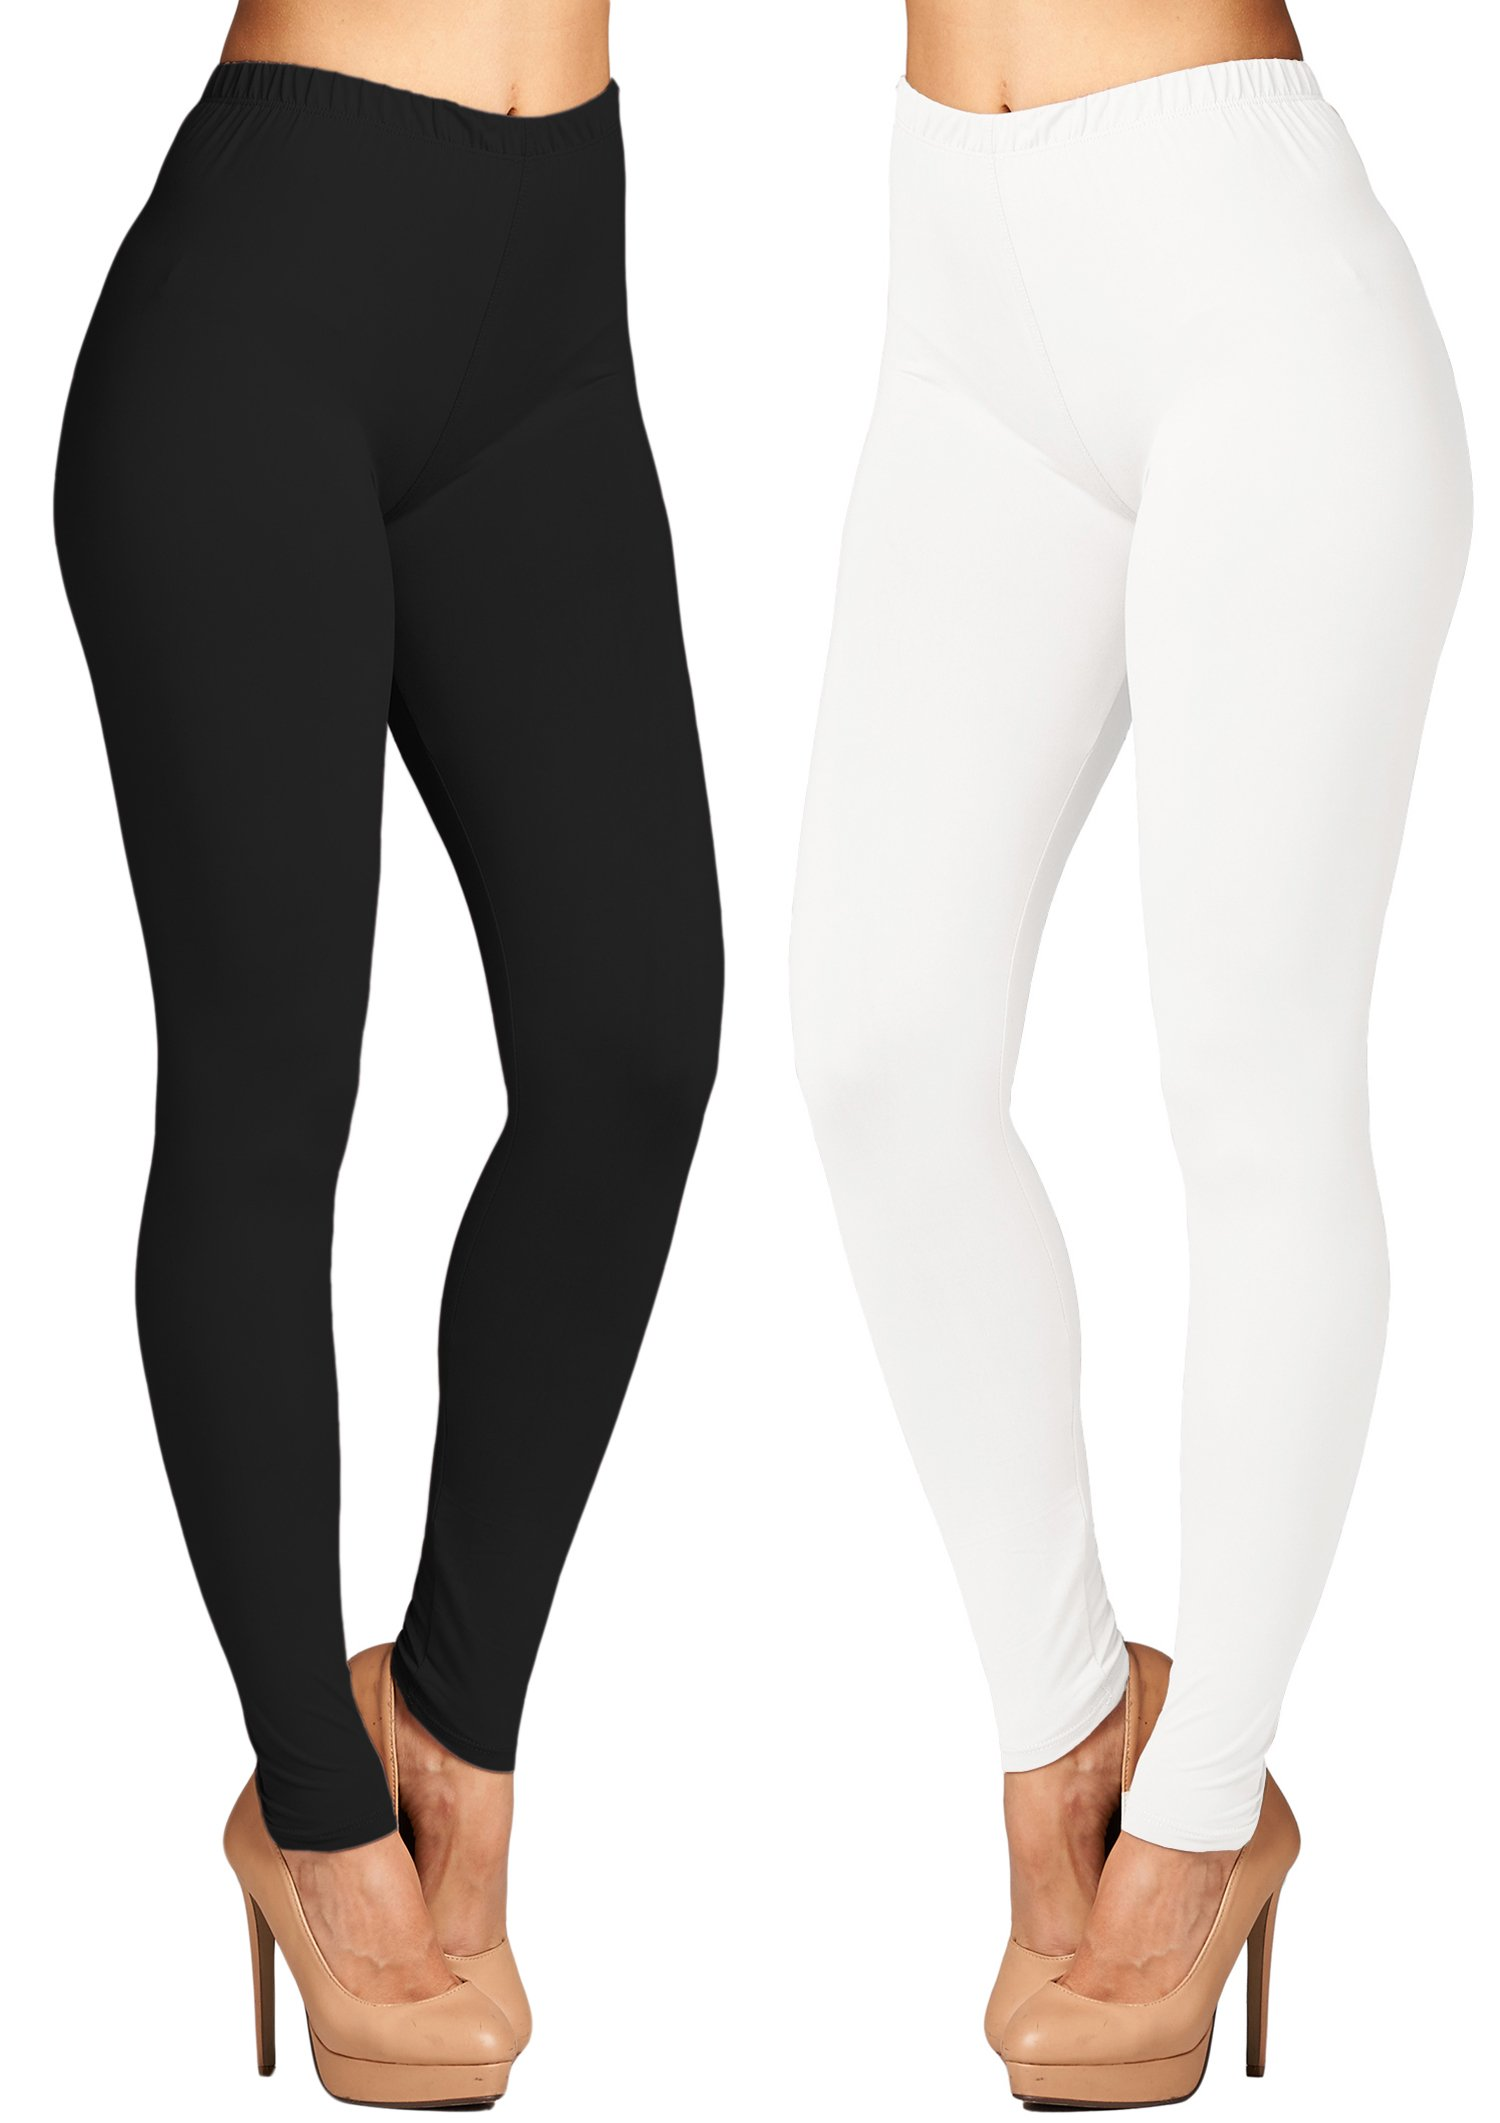 Leggings Mania 2-pk Women's Plus Solid Colored High Waist Leggings Black White